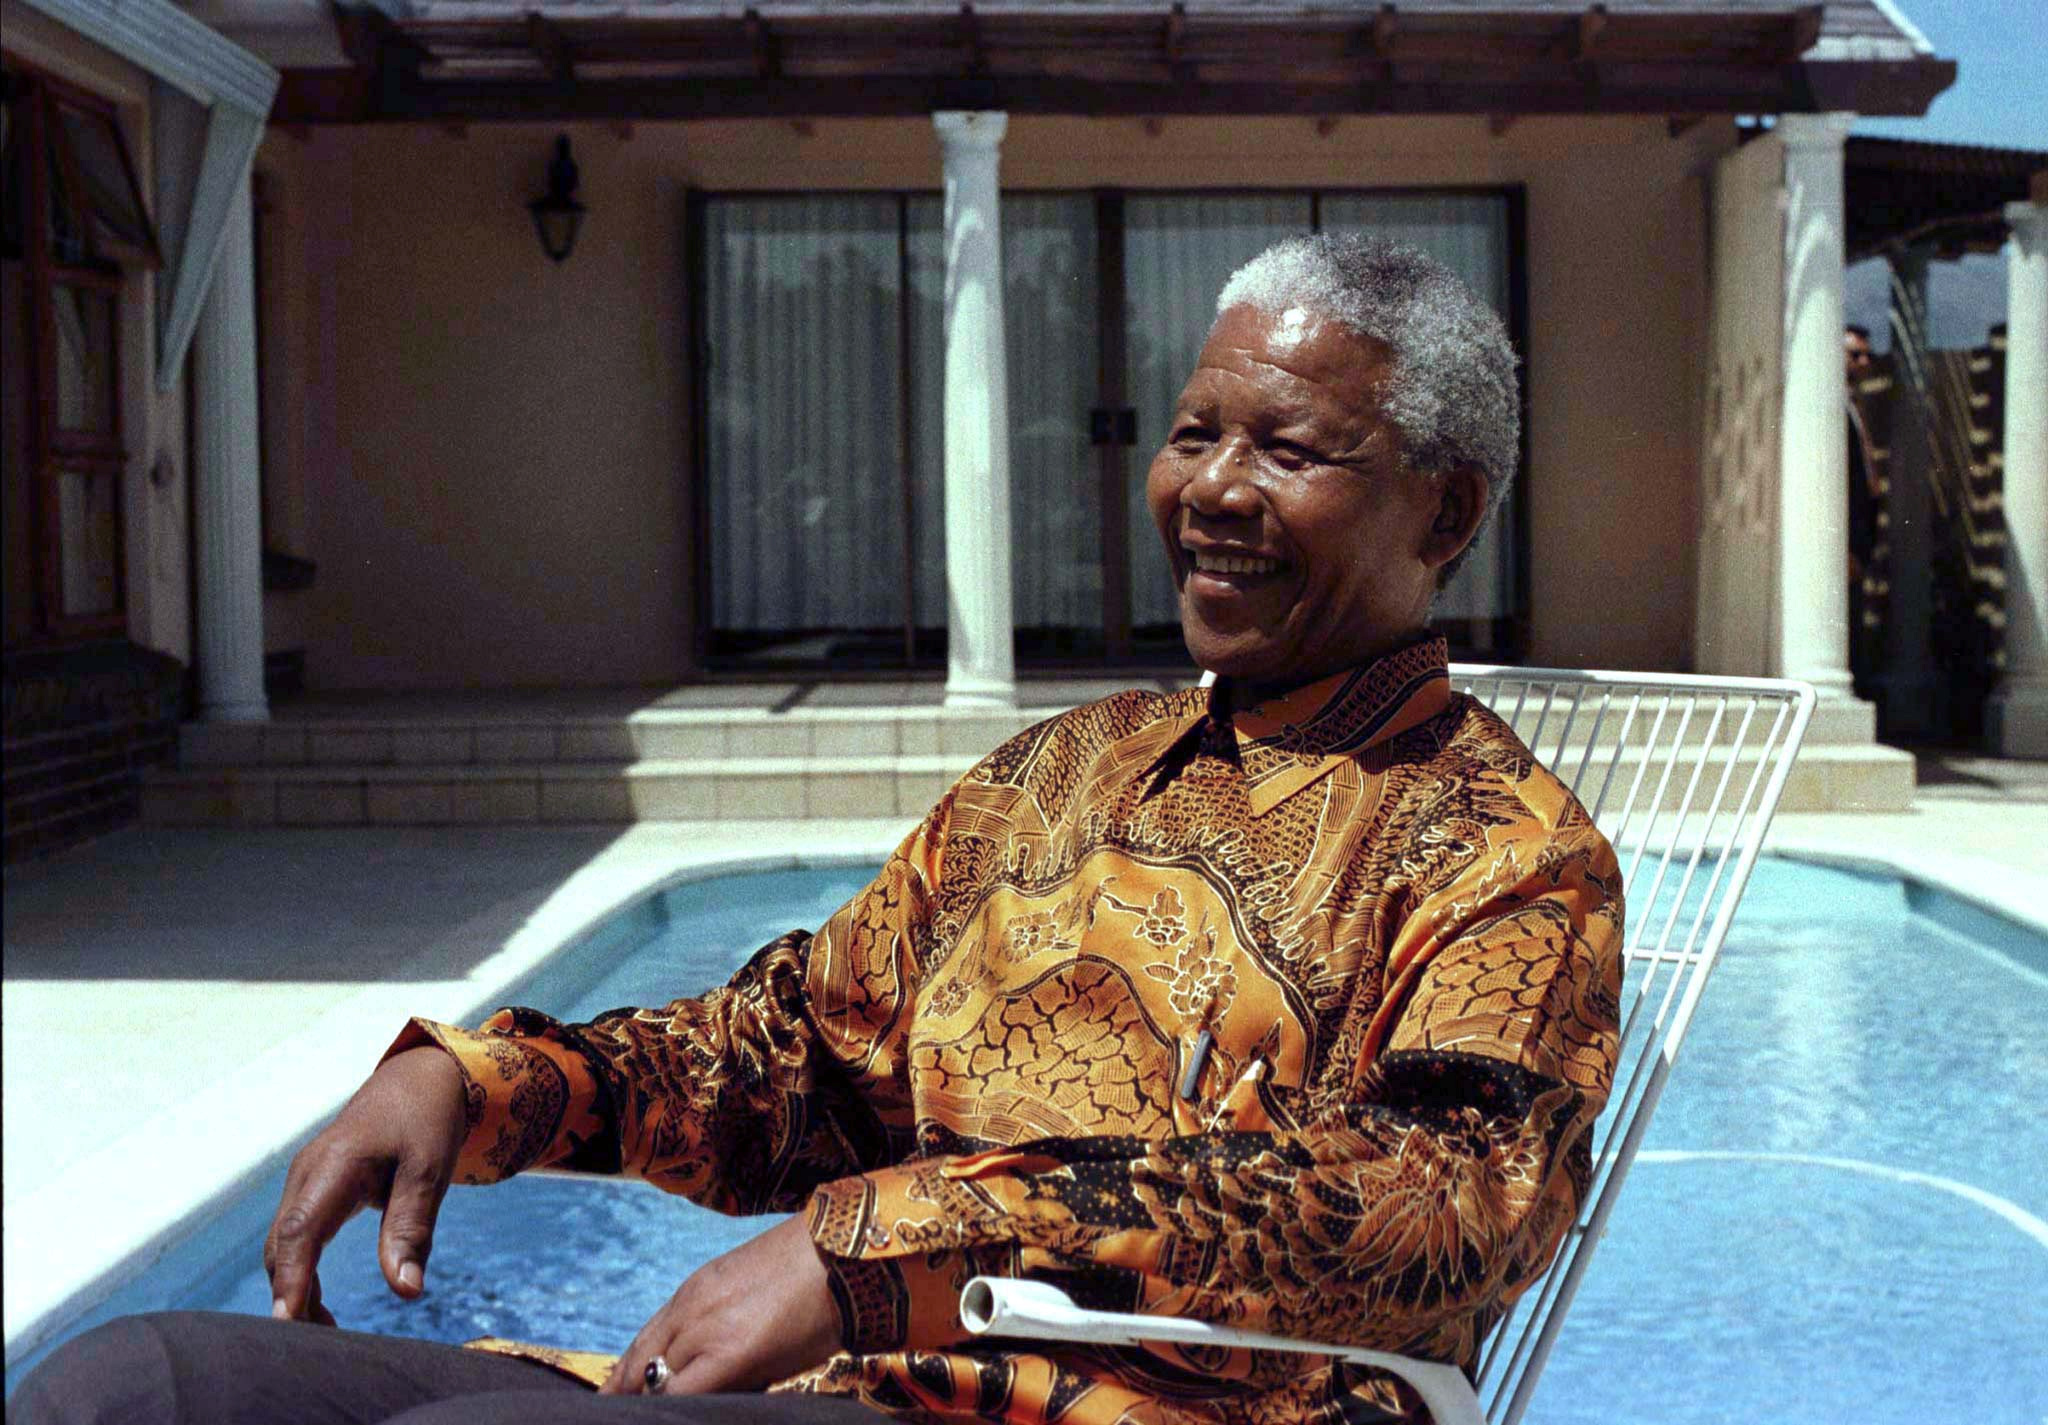 FILE PHOTO: Nelson Mandela reminisces with journalists by the pool at his former house at Victor Verster Prison in Paarl near Cape Town, South Africa, October 29, 1996. Tuesday marks the 30th aniversary of Mandela's release from the prison after serving 27 years in jail, on February 11, 1990. REUTERS/Mike Hutchings/File Photo